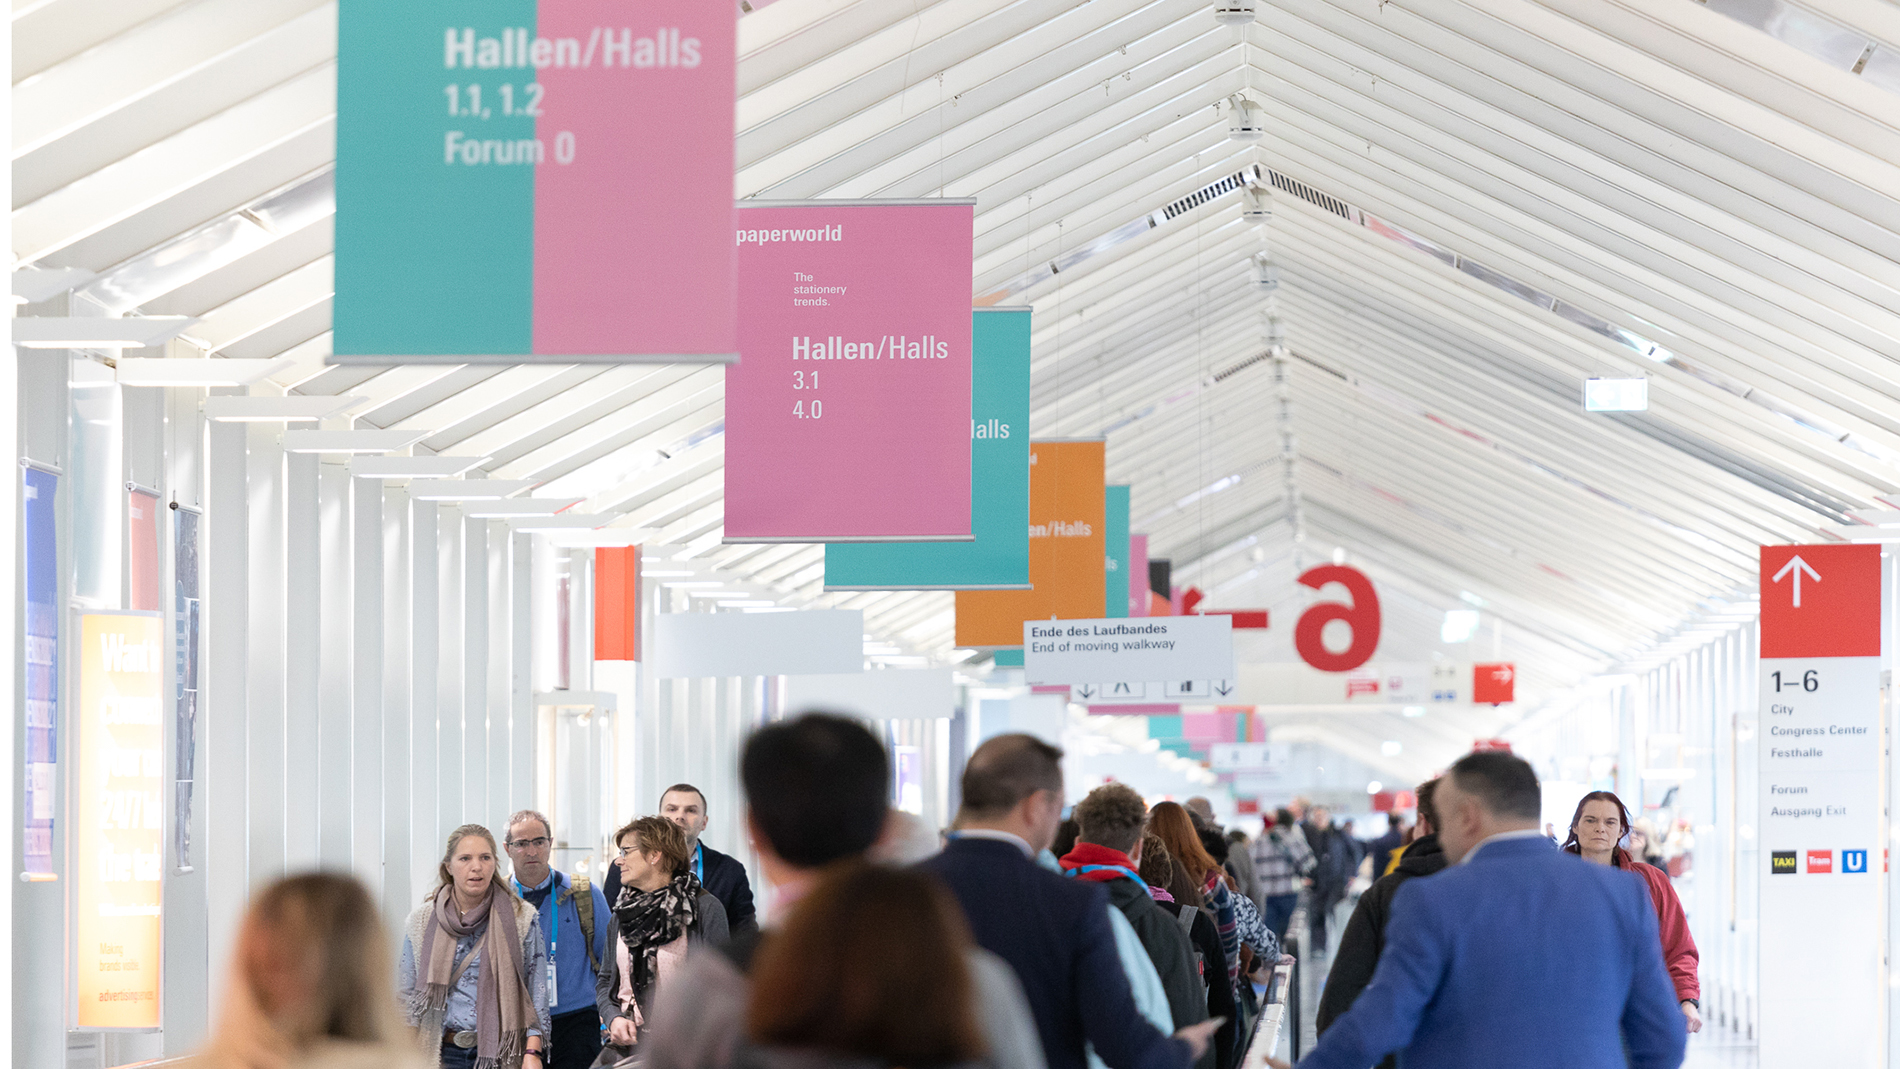 Paperworld: Trade fair visitors walk on the Frankfurt exhibition grounds